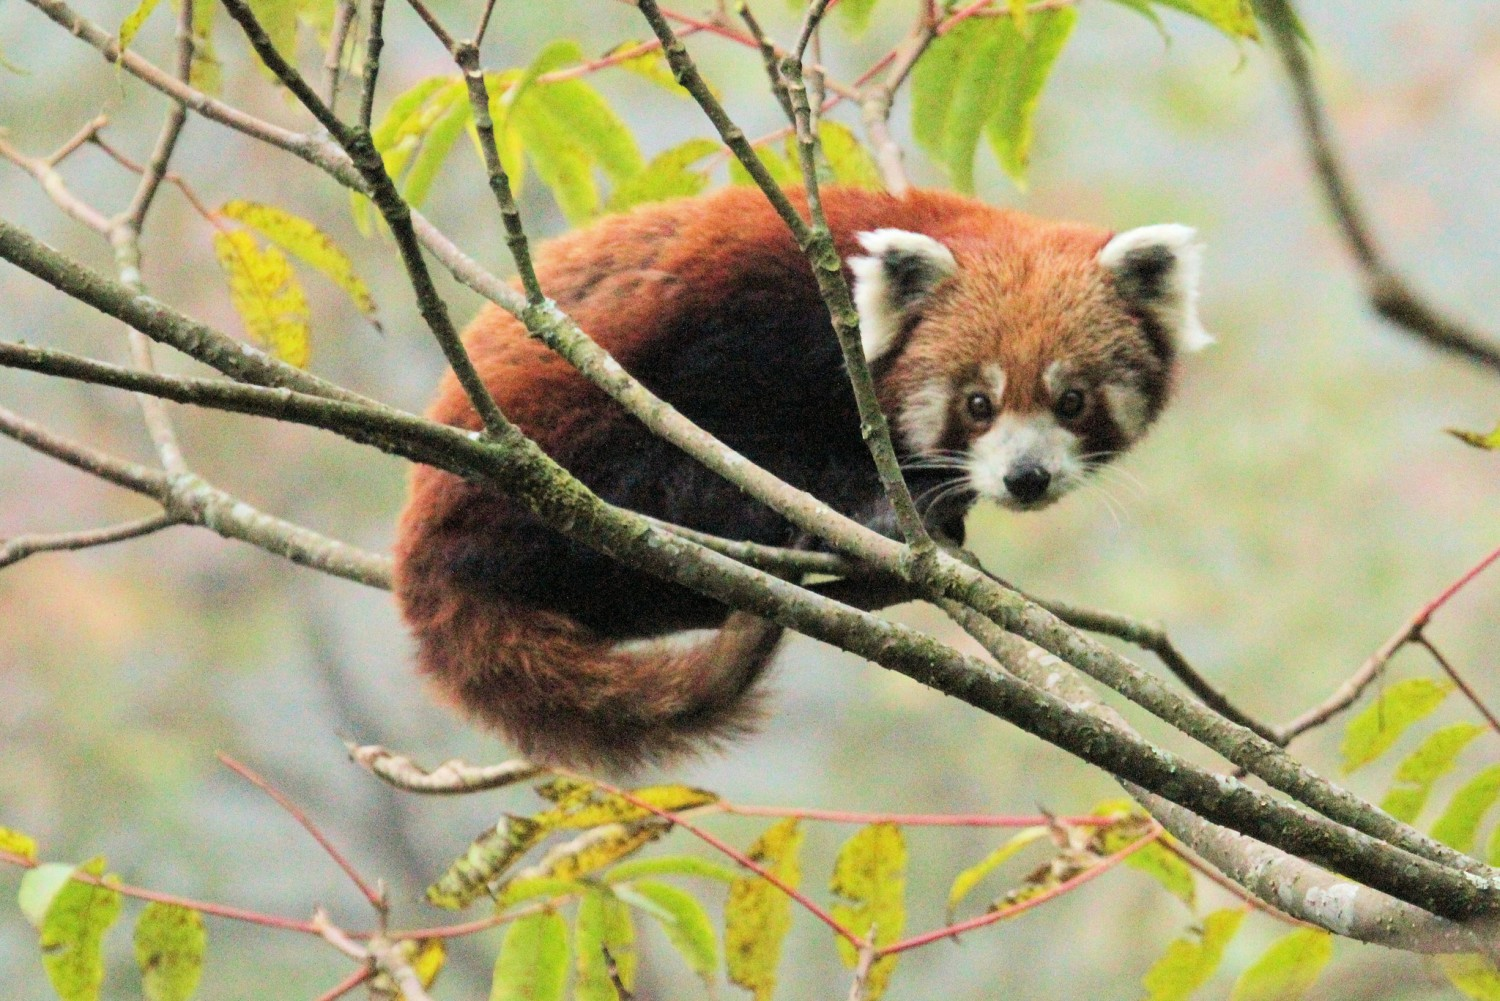 """""""Red Panda at Dobate"""": https://flic.kr/p/q62s5G von Michael Bamford.: https://www.flickr.com/photos/mfmb_bentley/, CC BY-NC-ND 2.0: https://creativecommons.org/licenses/by-nc-nd/2.0/"""